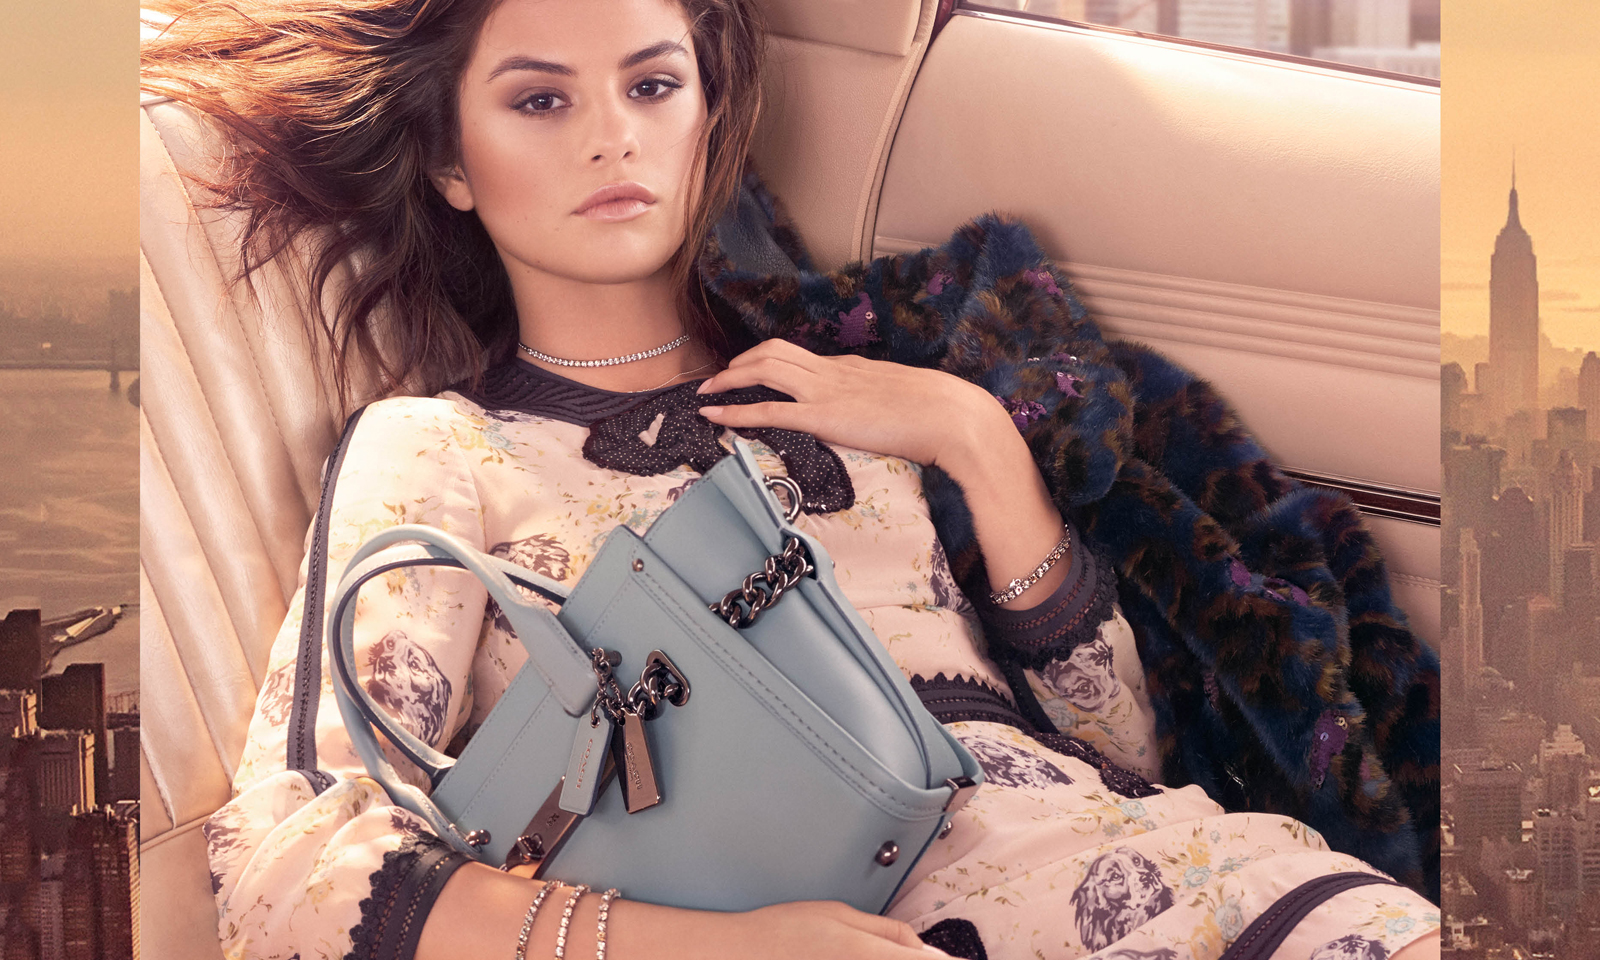 Coach-Introduces-the-Coach-x-Selena-Gomez-Carry-All-Bag